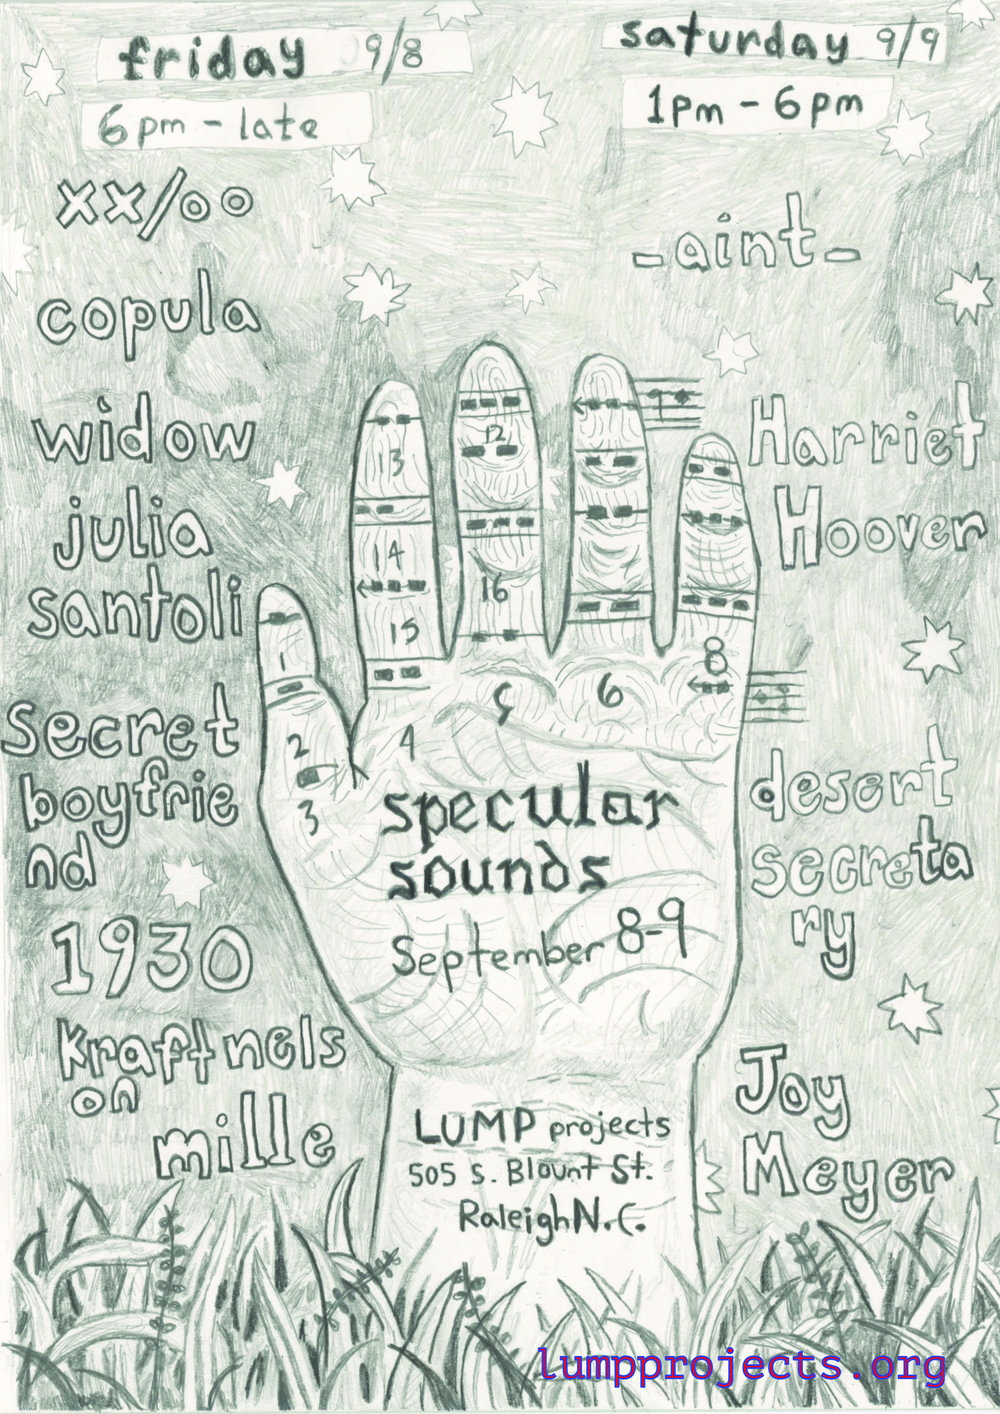 specular sounds poster.jpg